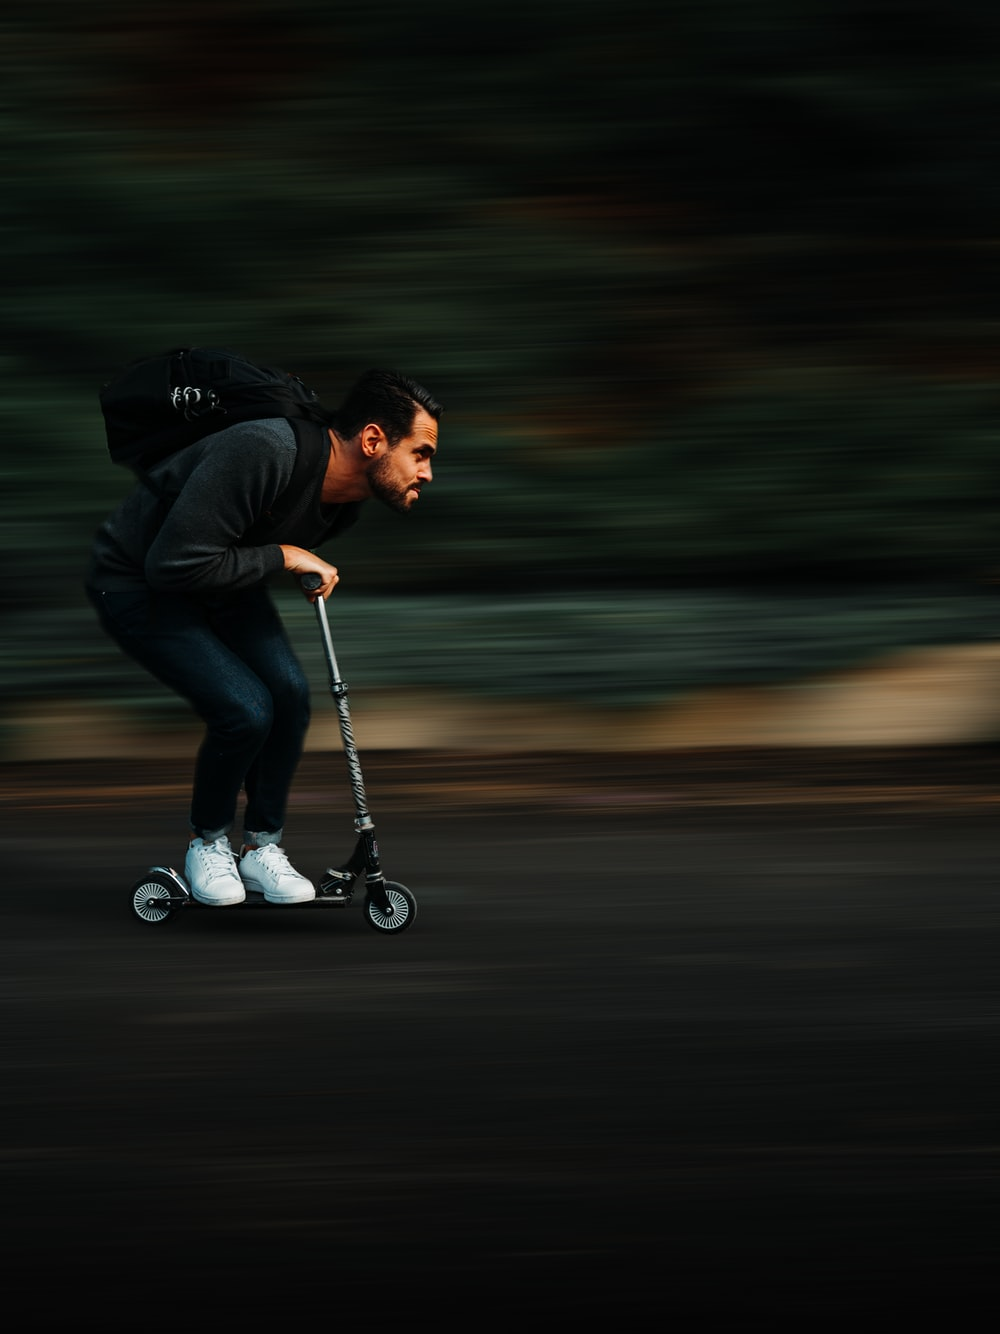 grown man riding very small electric kick scooter with fast speed